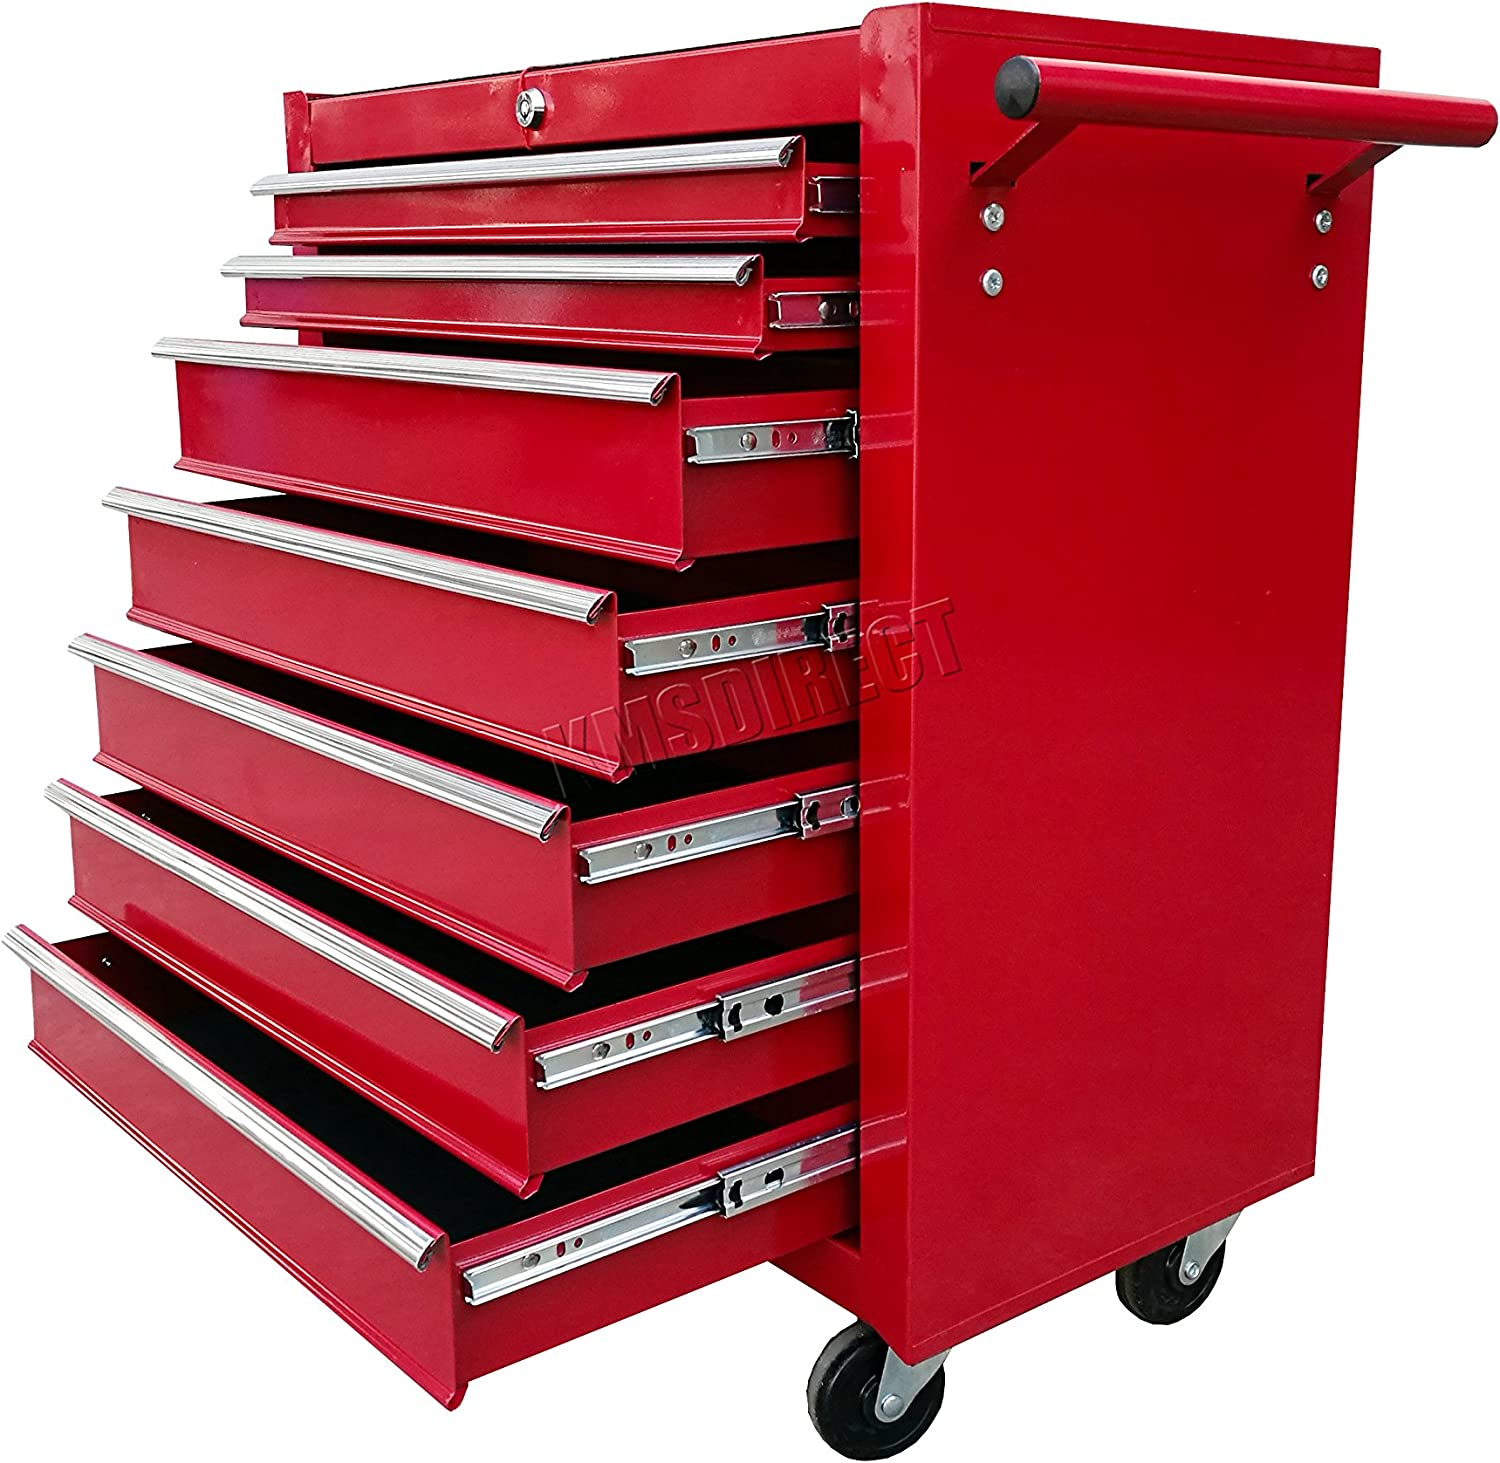 Portable Lockable Storage Chest Garage Tray With Lid Tool Box Organinzer 19 in